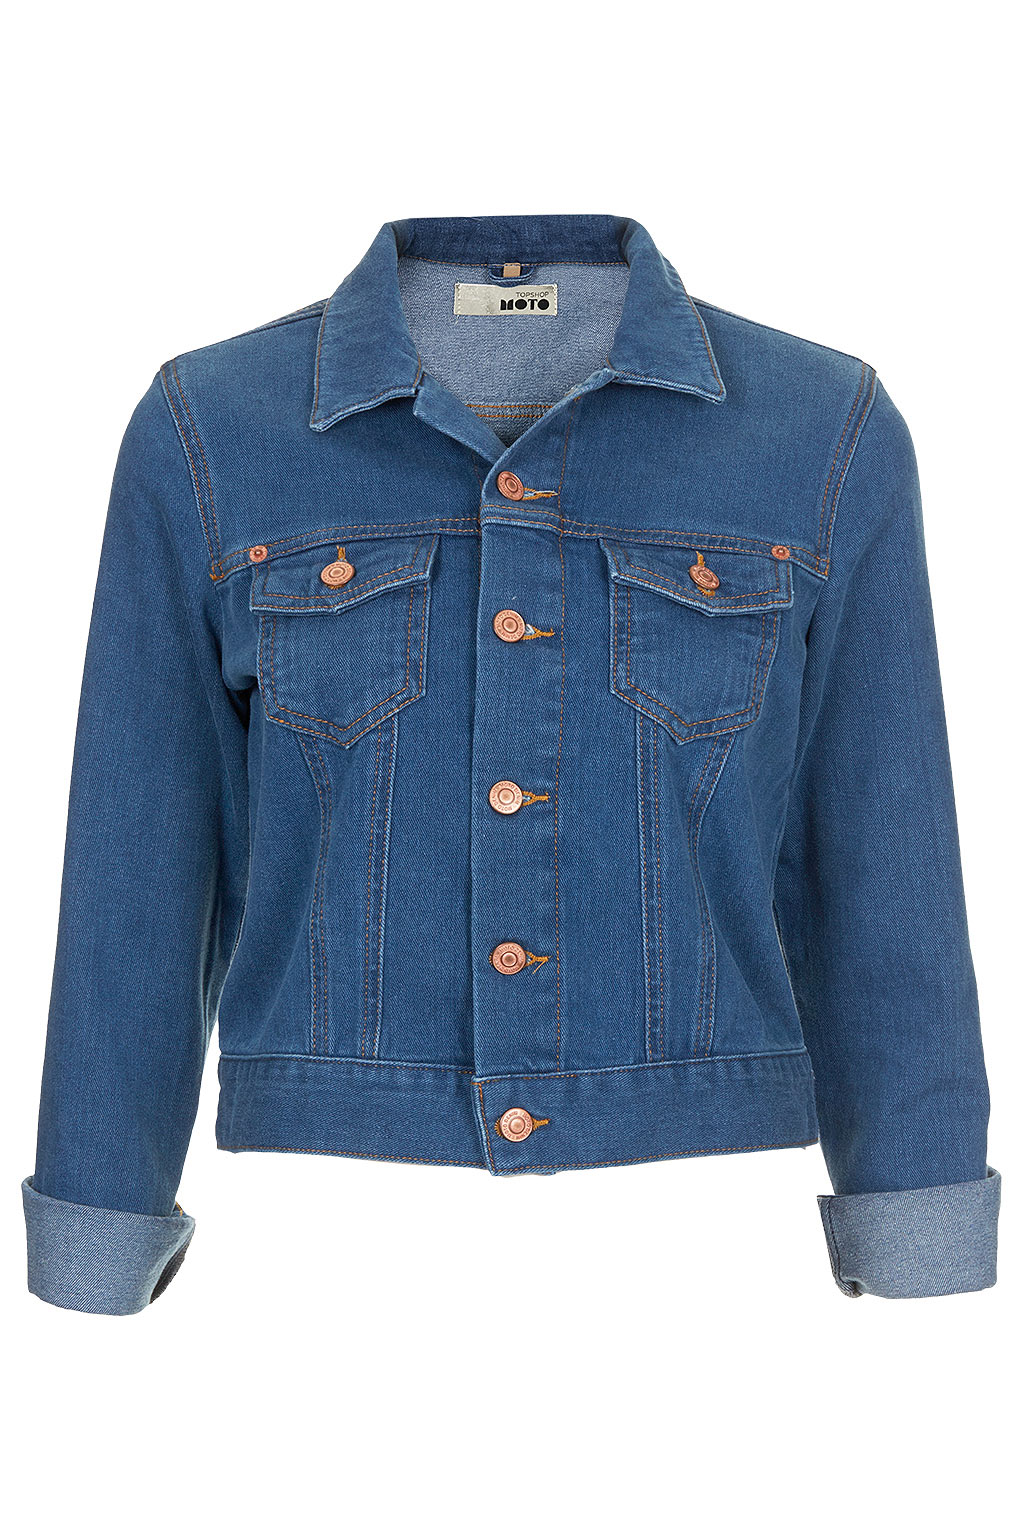 Topshop 70s blue denim western jacket in blue lyst for Womens denim shirts topshop